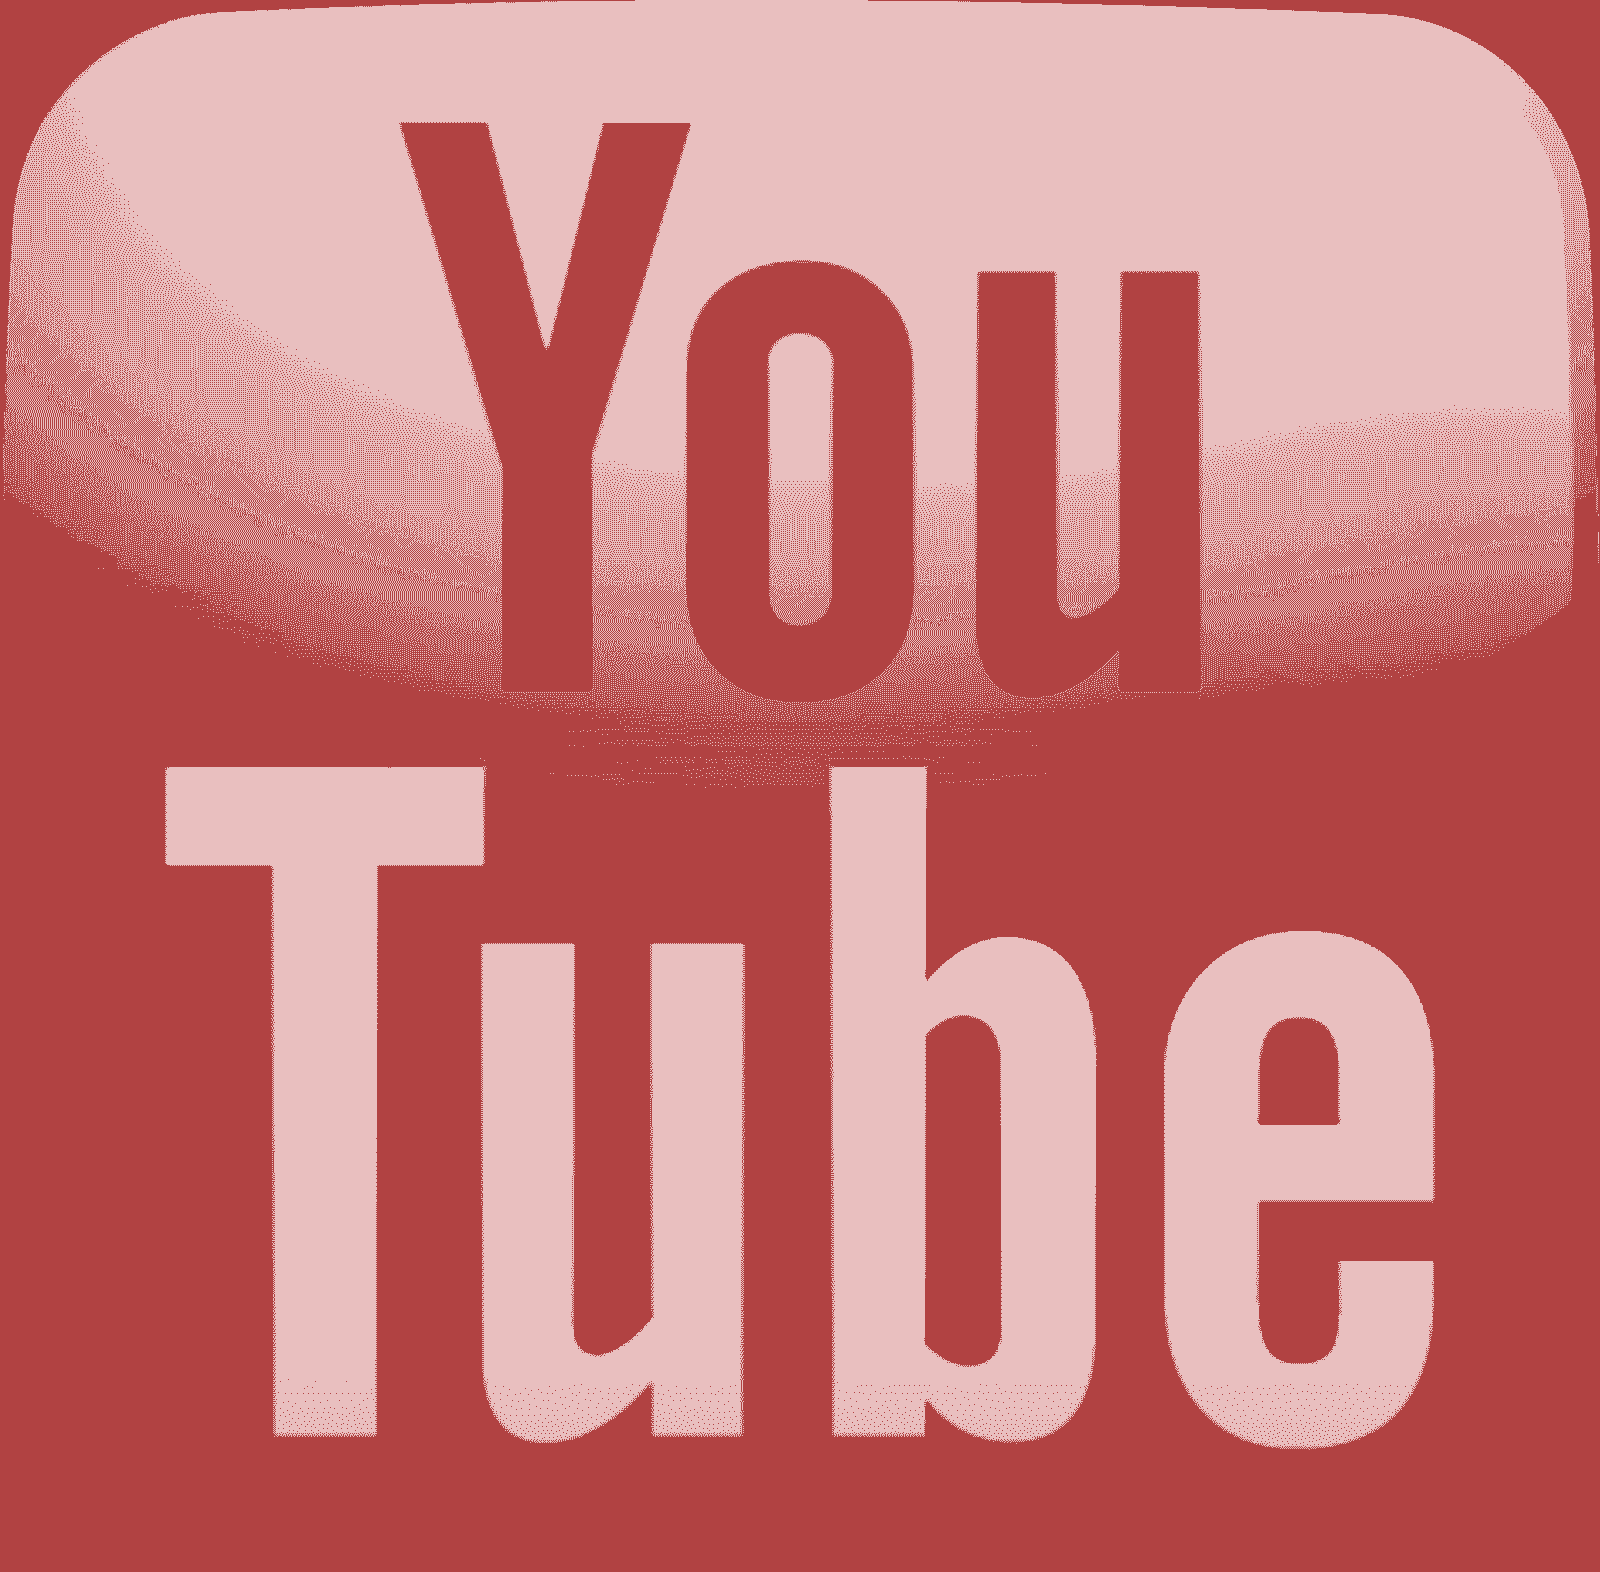 Youtube_homegenies-min-min